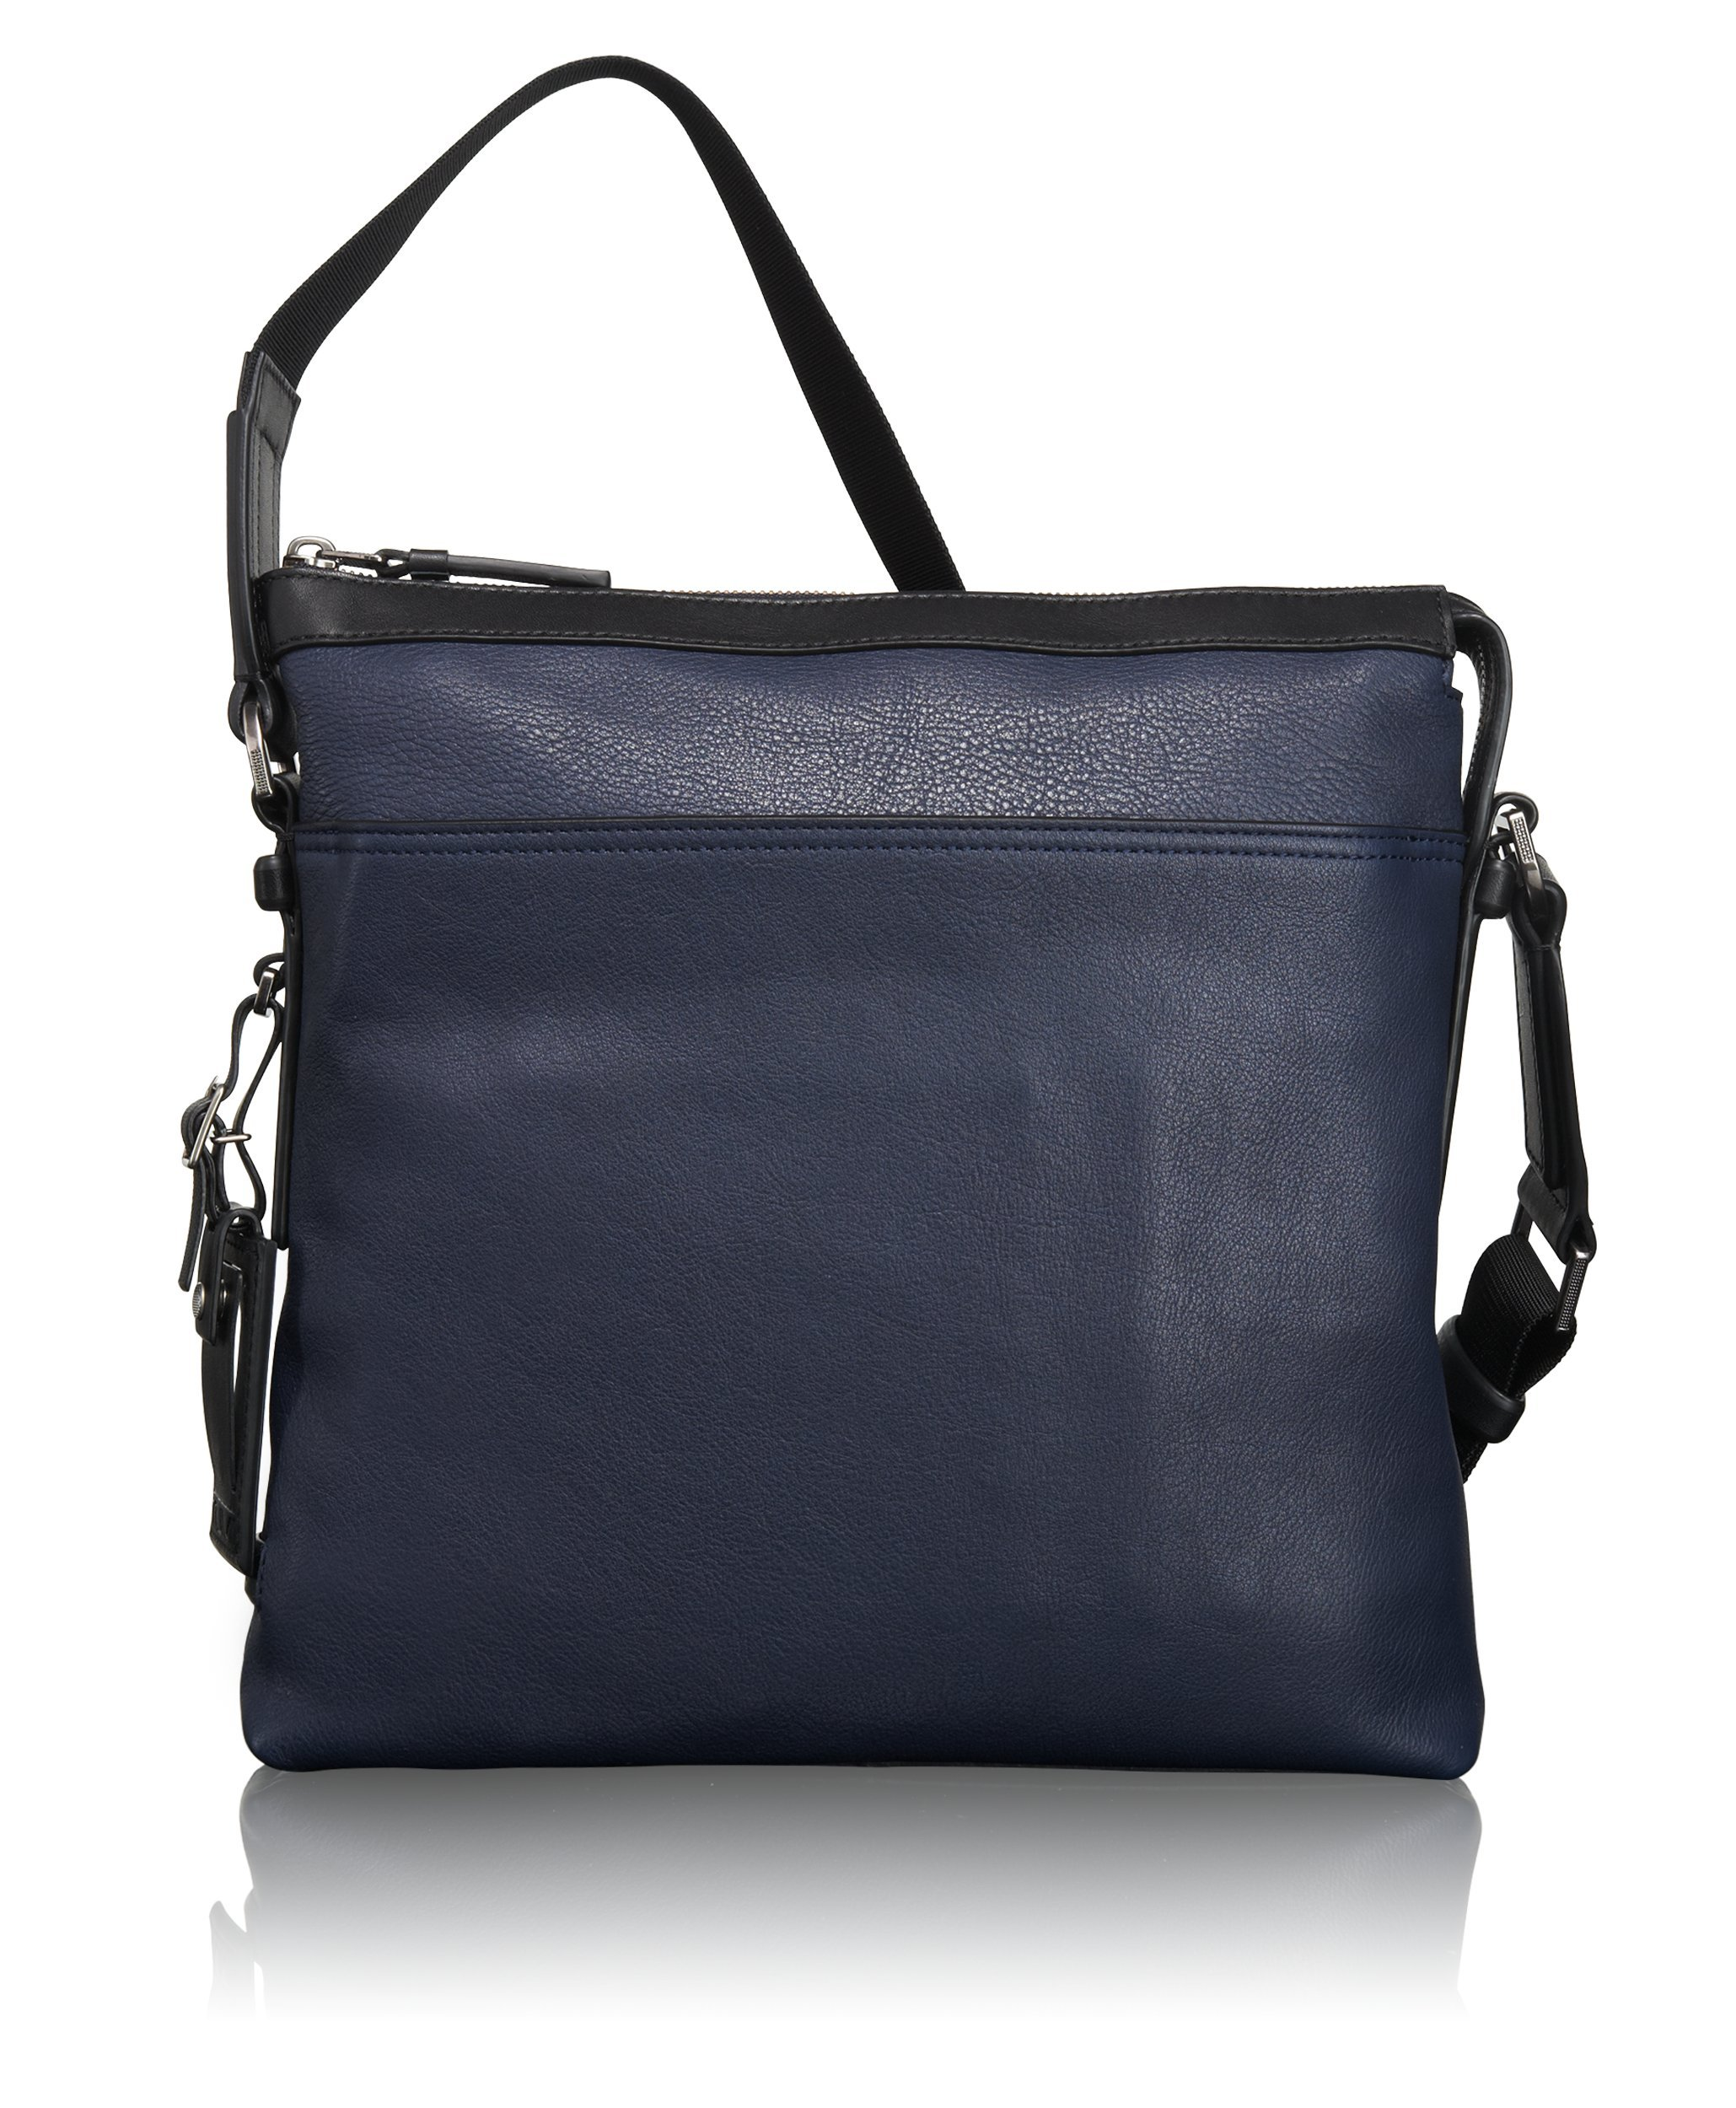 Tumi Mission Bartlett Leather Crossbody, Navy